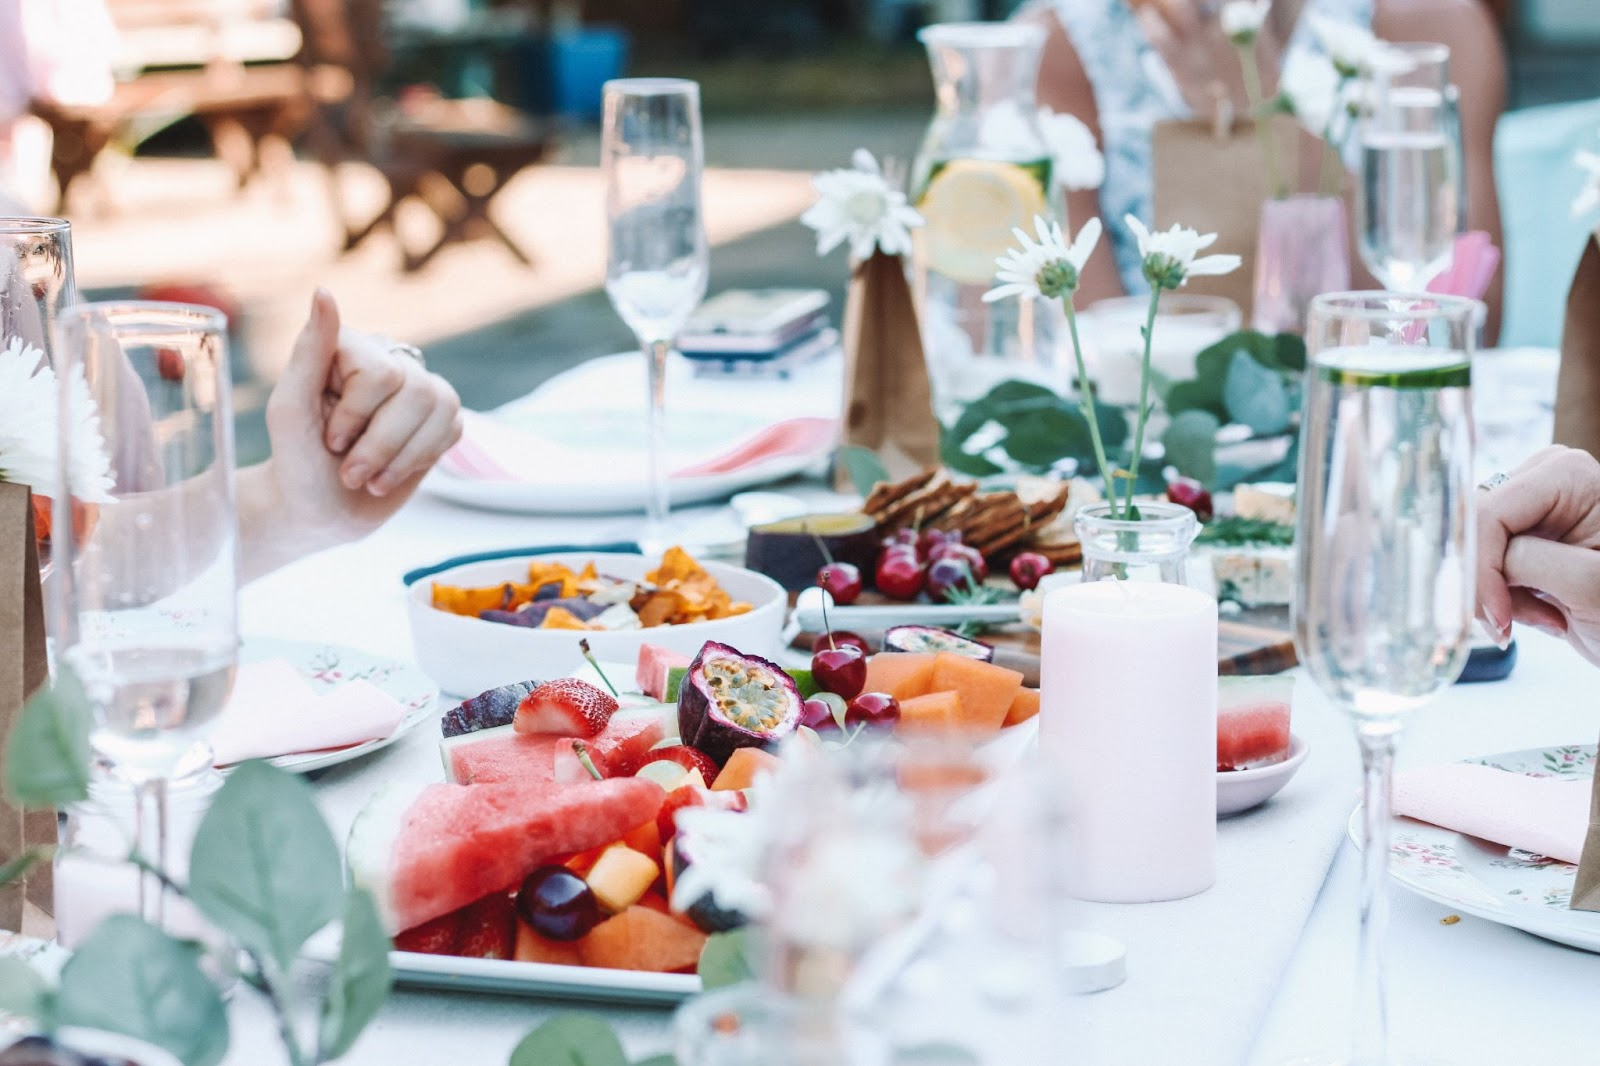 A table with food